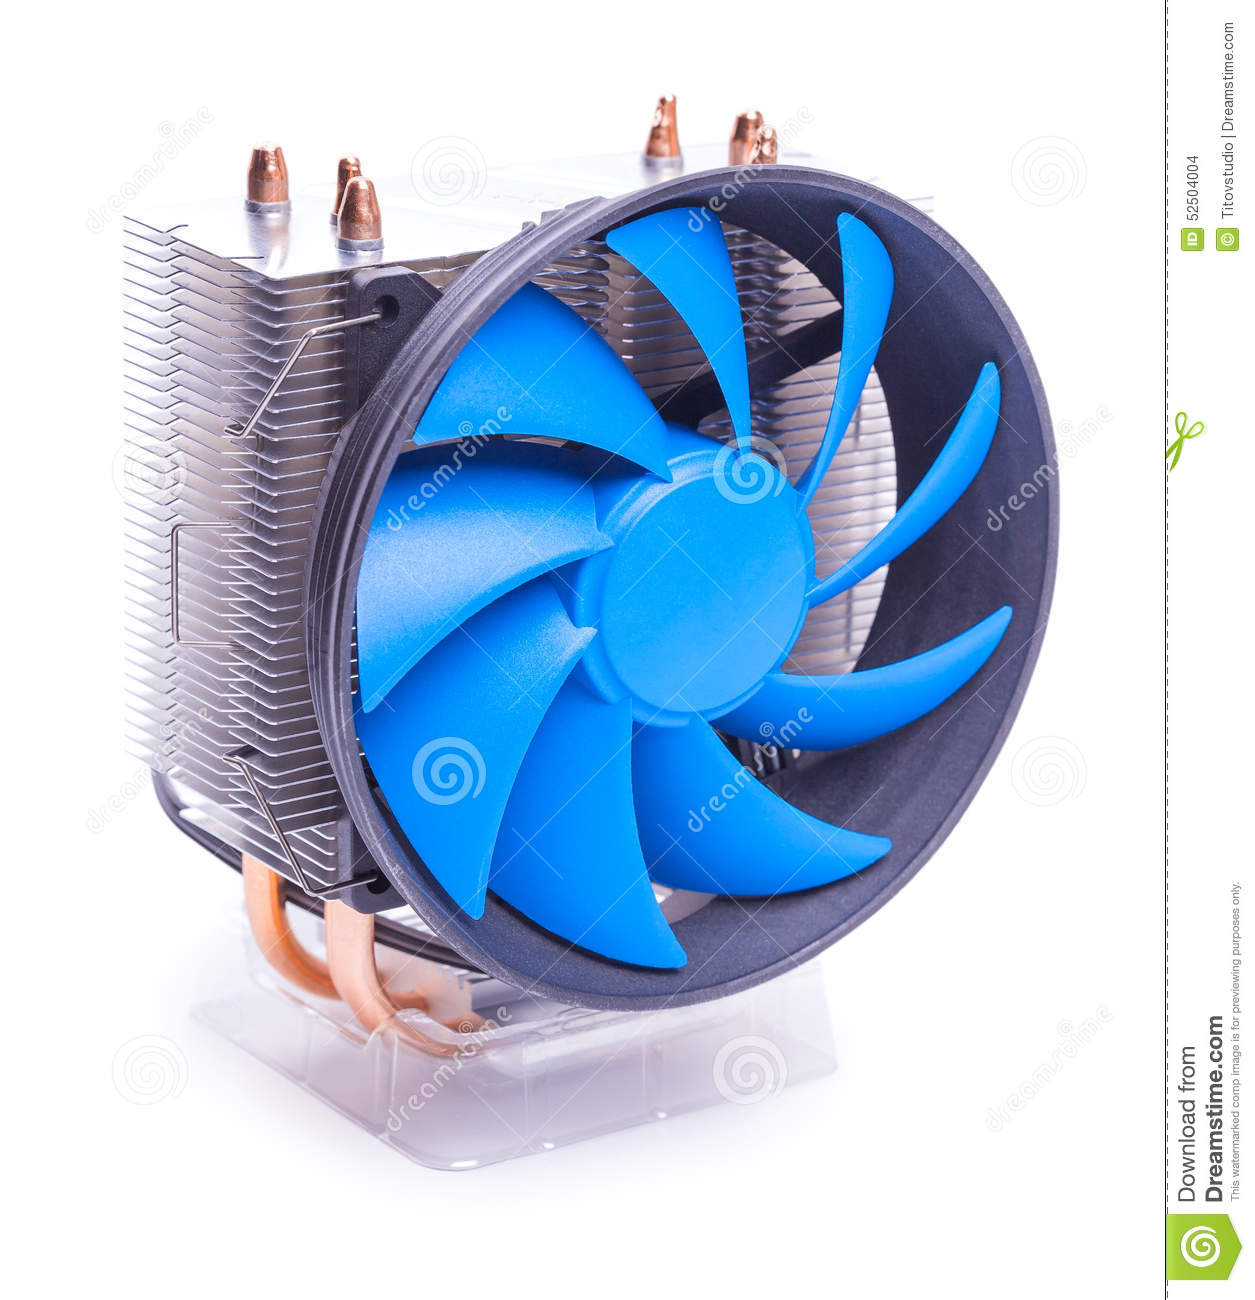 Cpu Cooler On A White Background Stock Photo